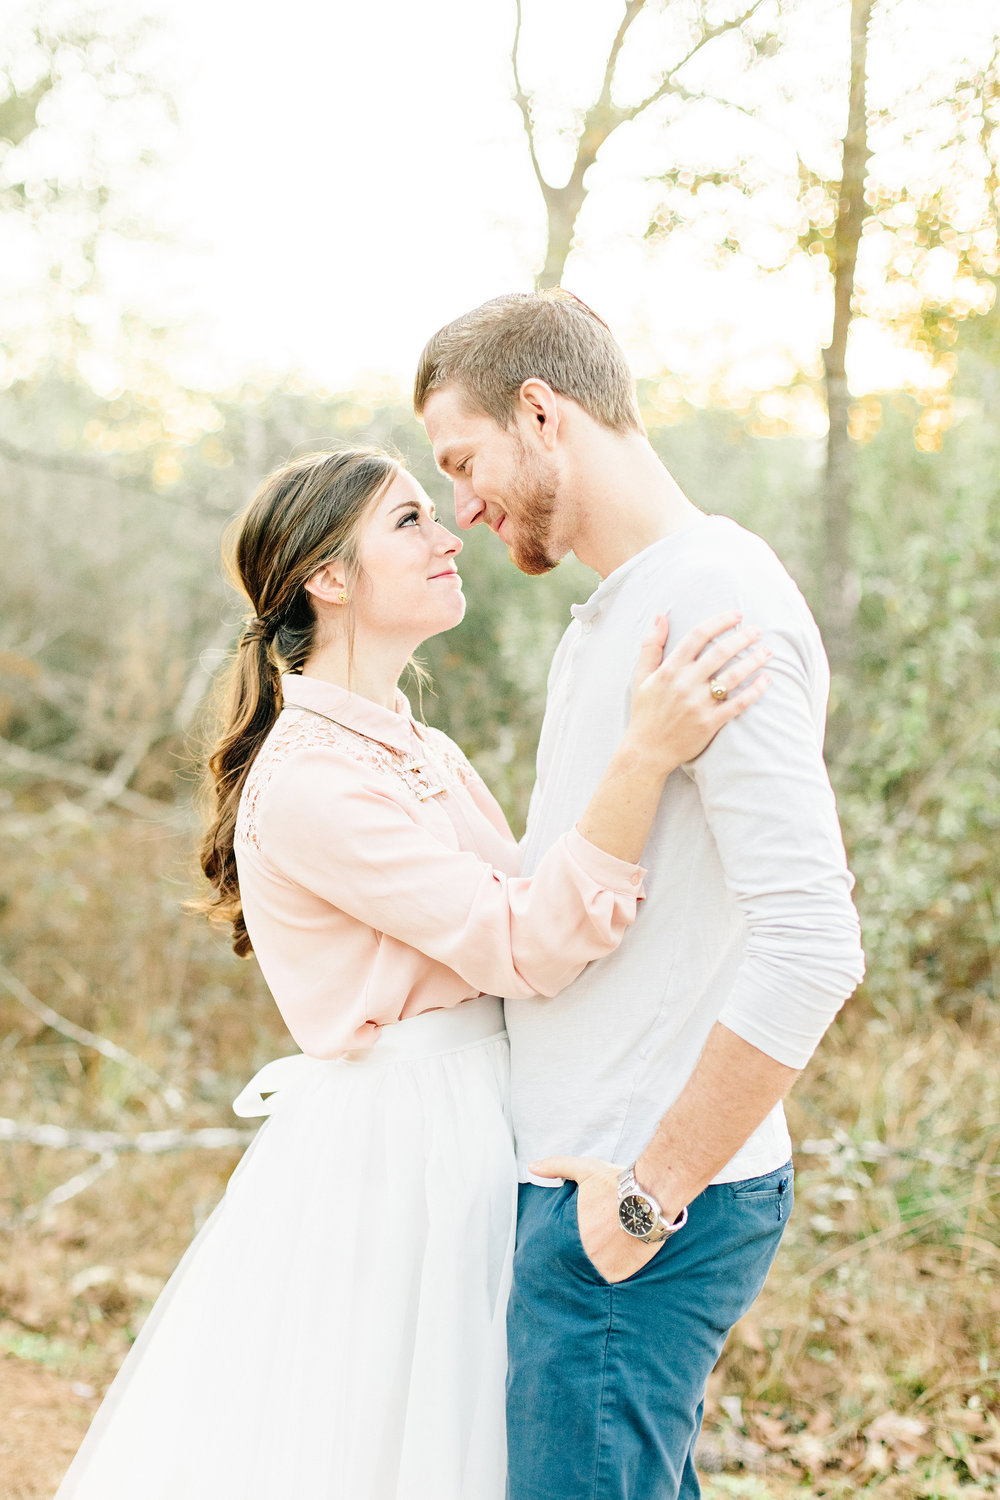 Houston Couples Photographer | Cassie Schott Photography